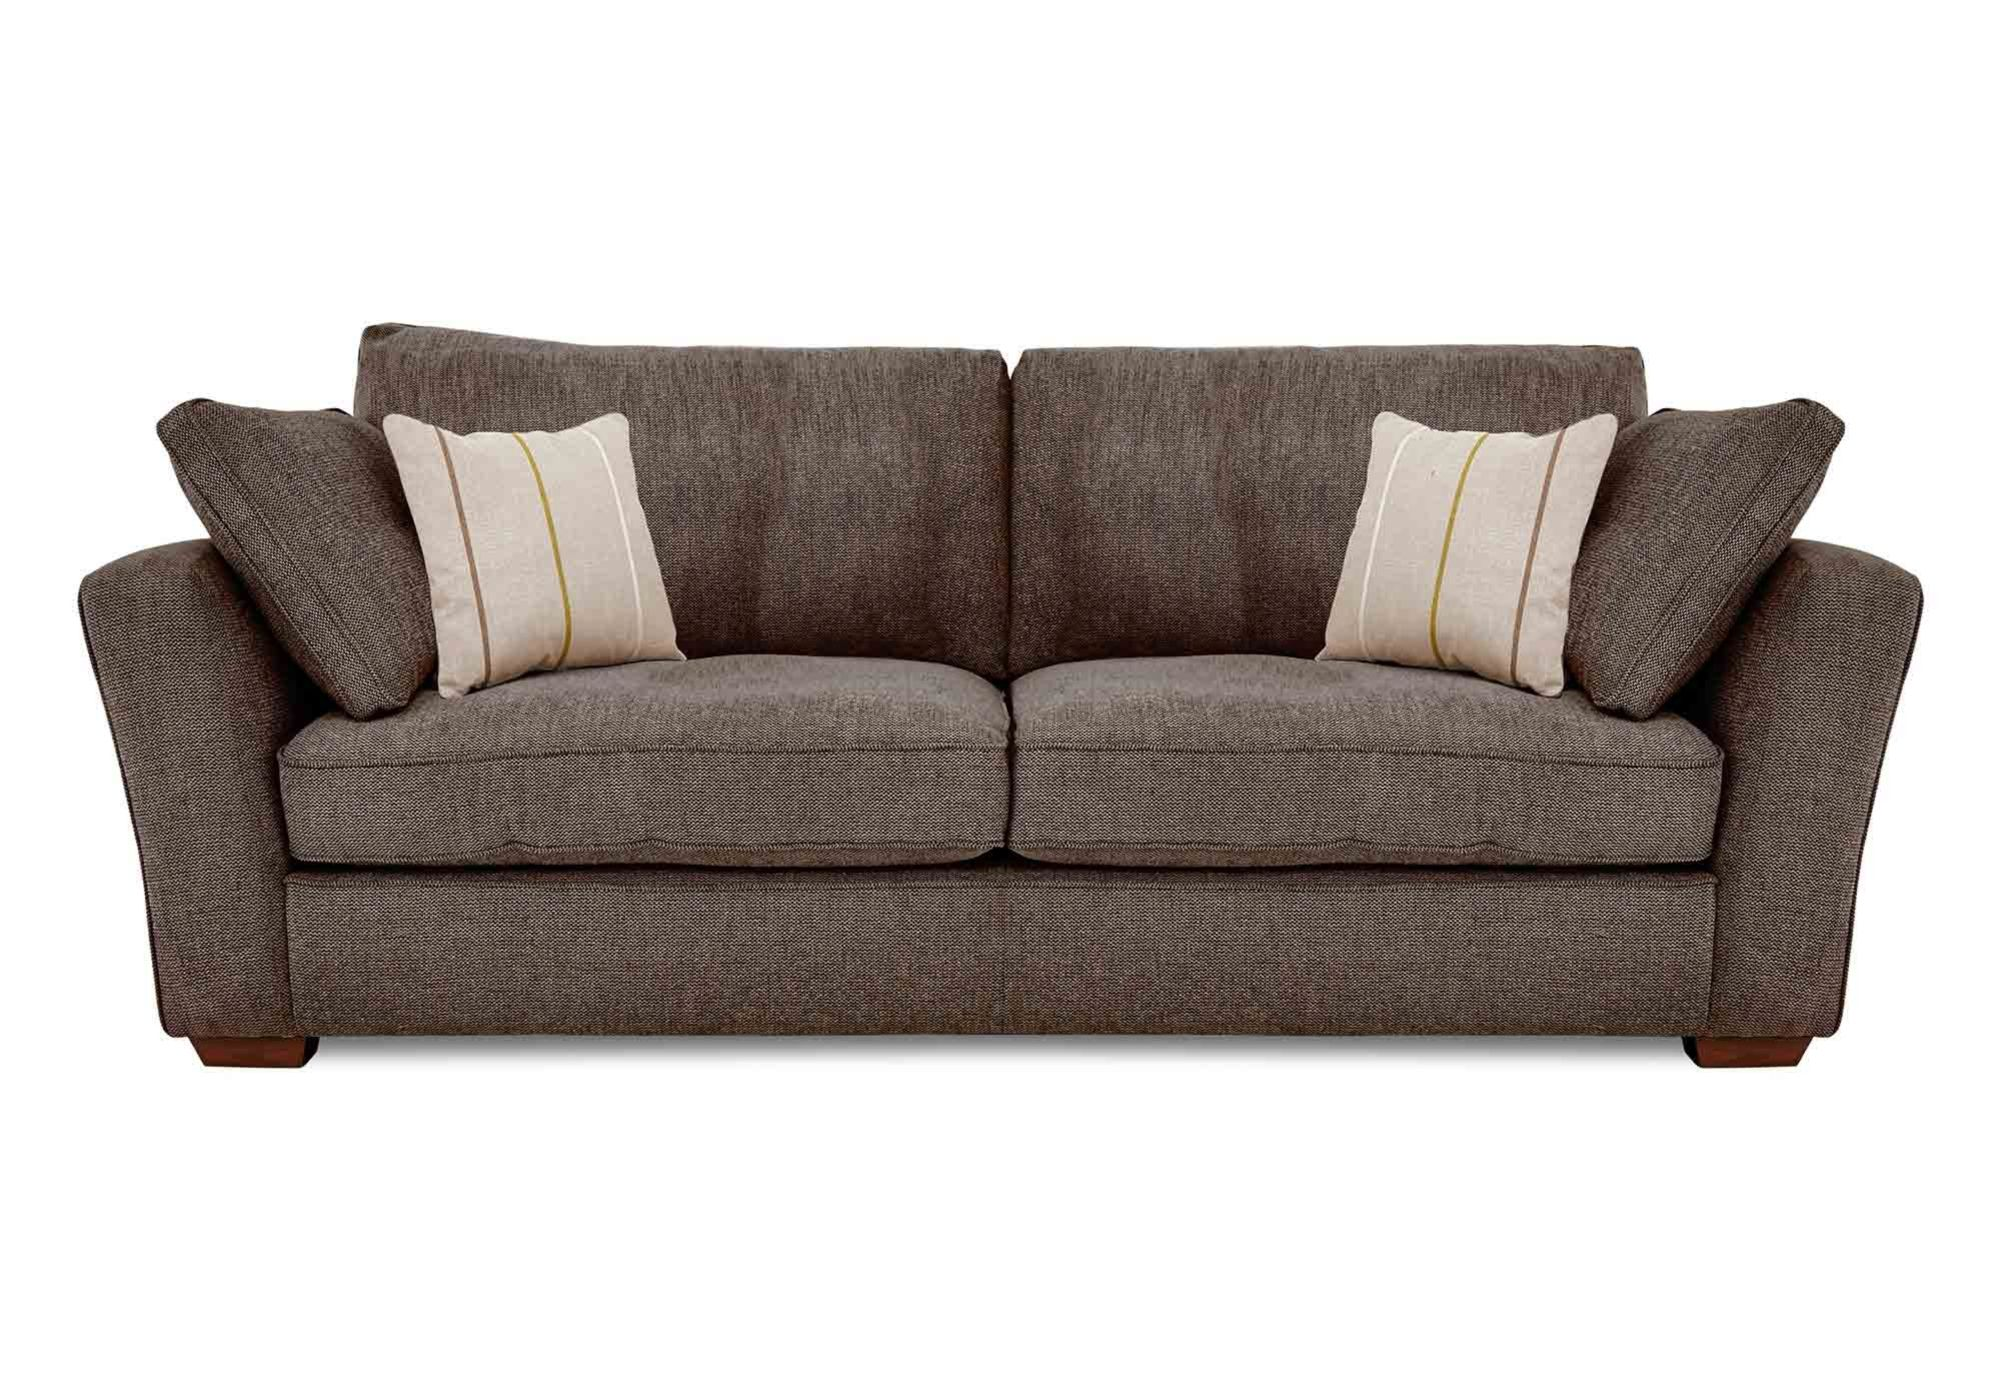 The Range Living Room Furniture 4 Seater Sofa Otto Gorgeous Living Room Furniture From